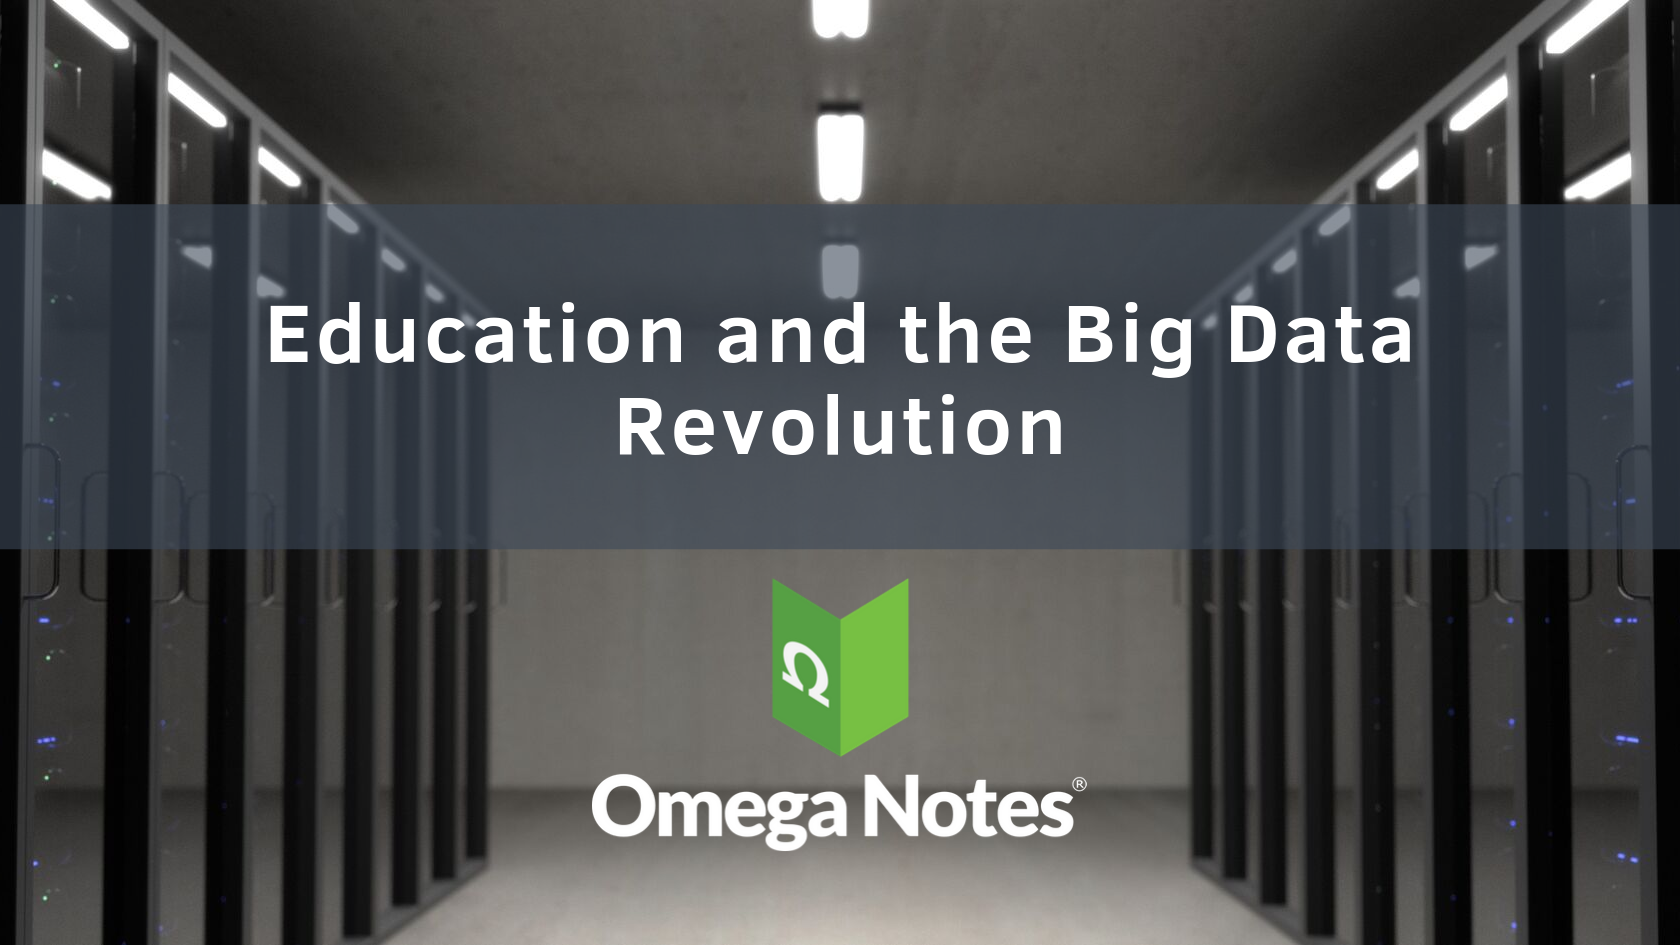 Education and the Big Data Revolution